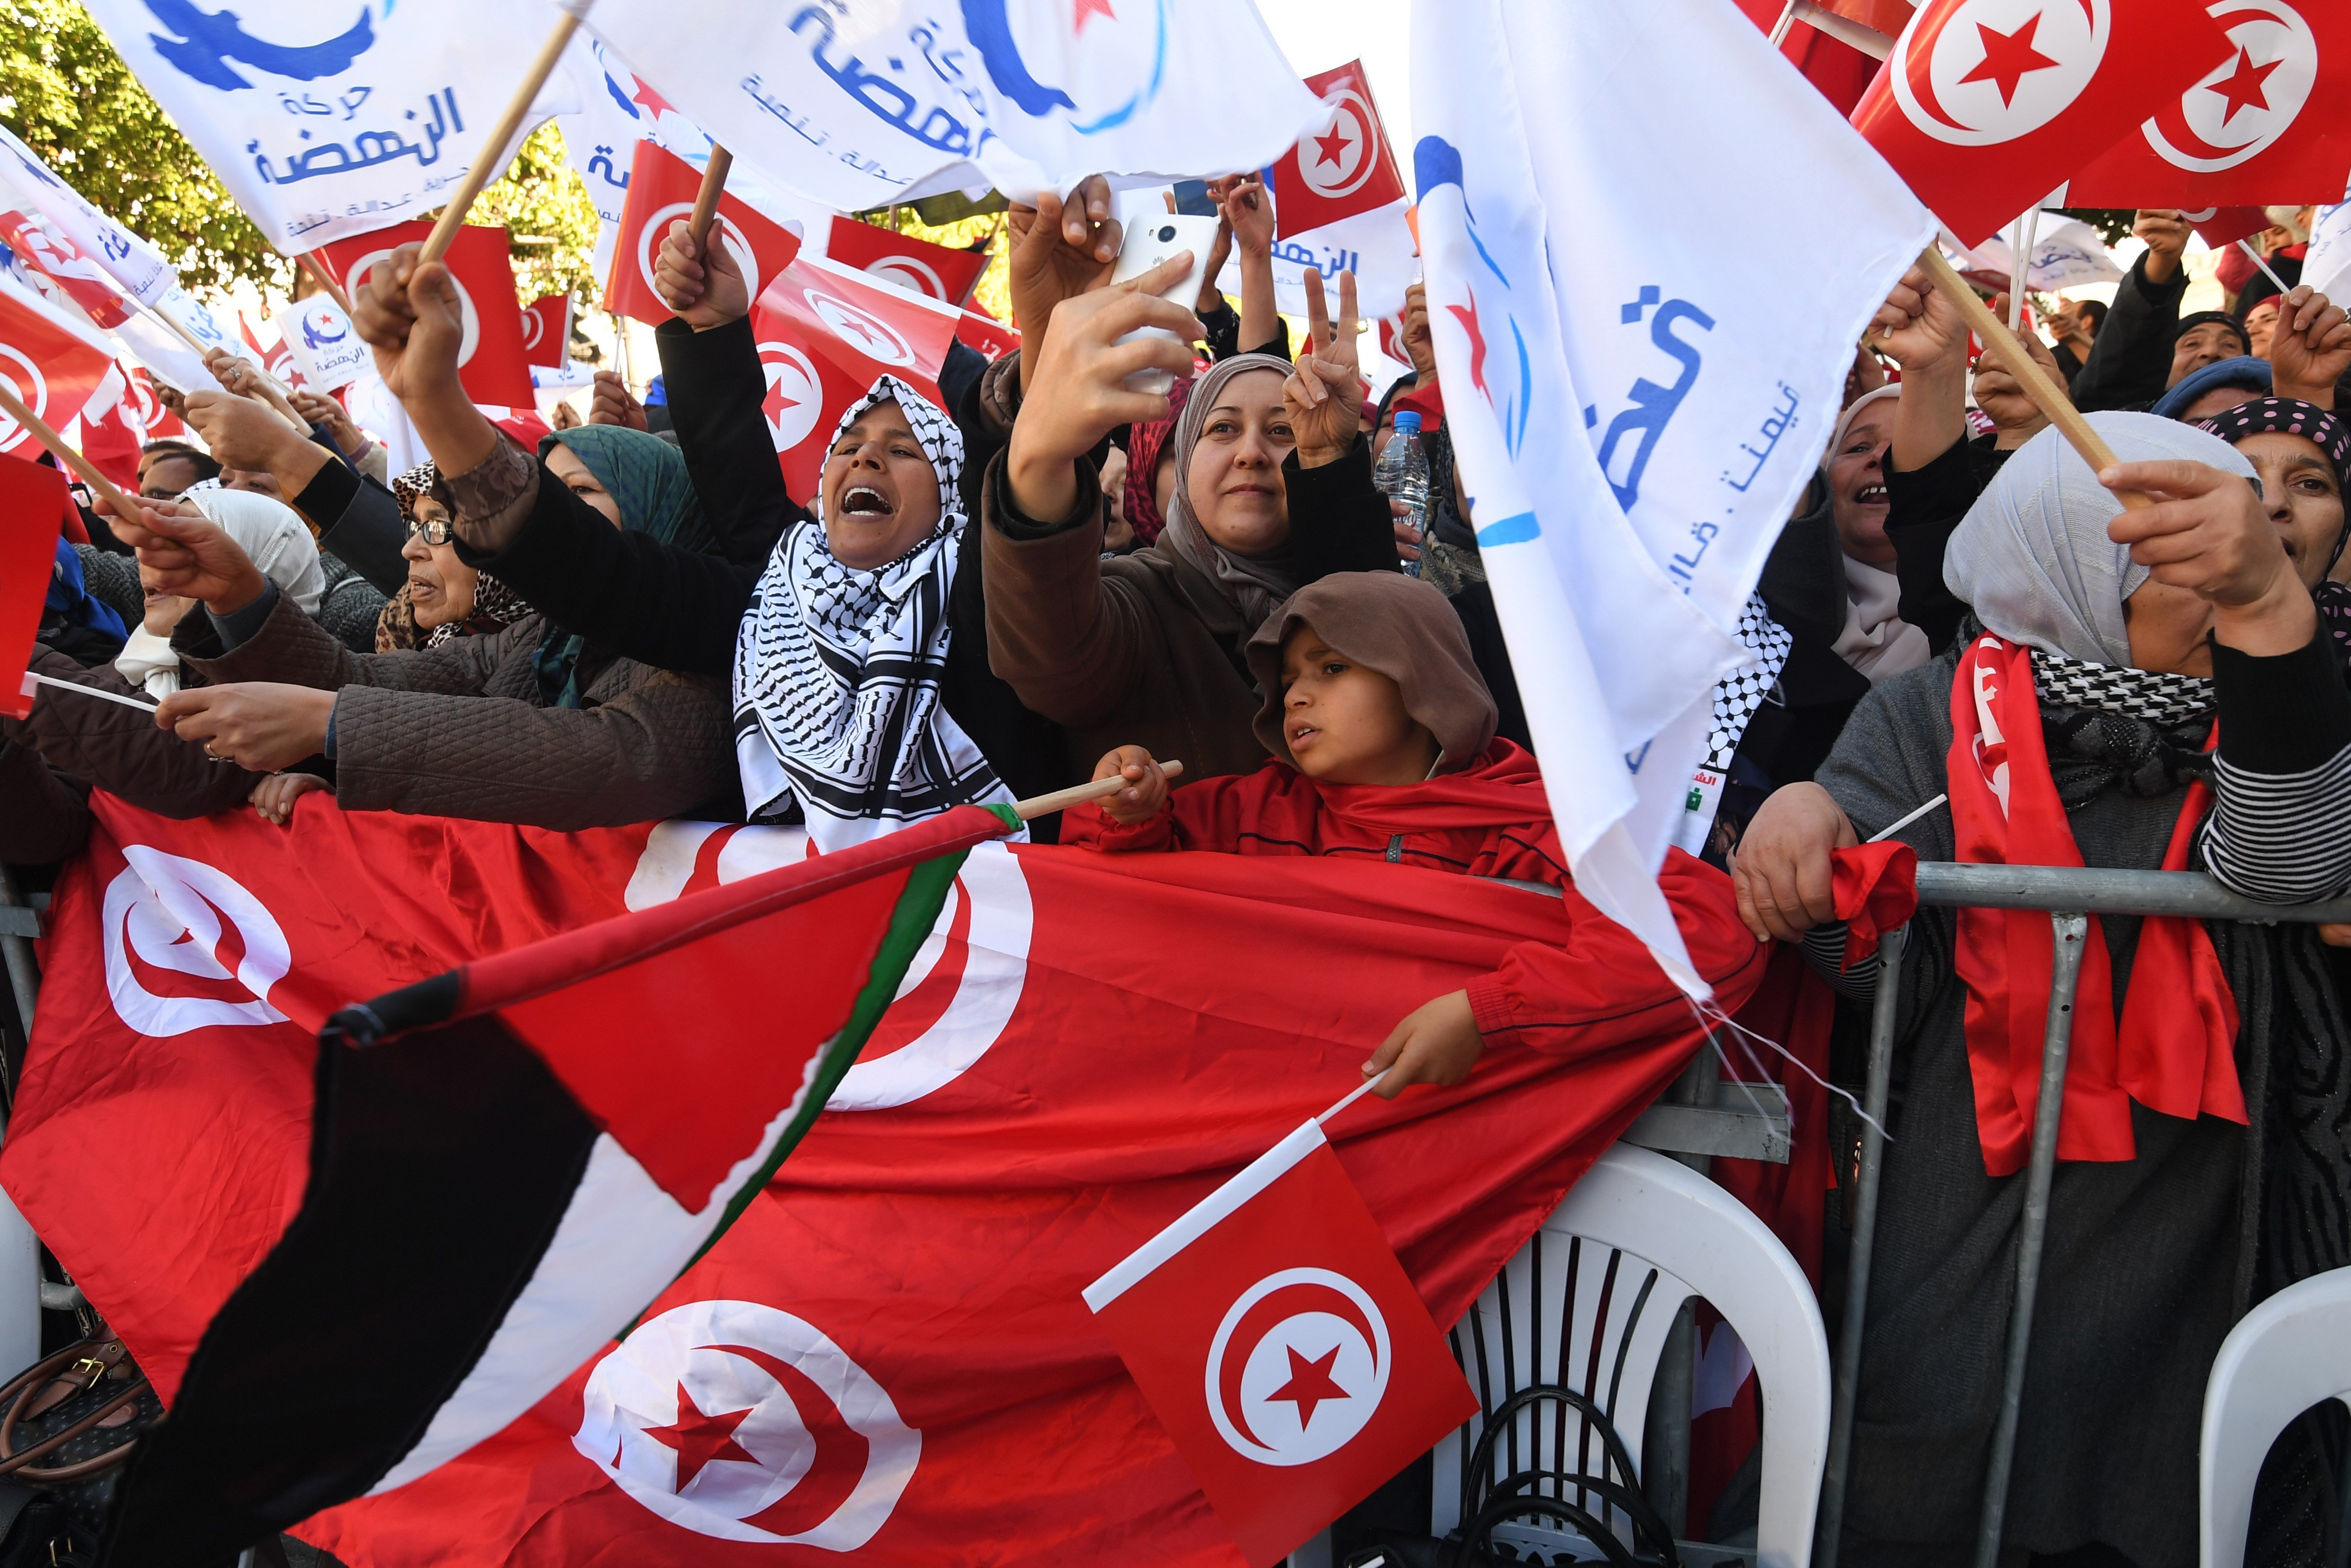 Tunisians wave national flag as they gather on 14 January, 2018 to mark the seven year anniversary since the uprising that launched the Arab Spring (AFP)